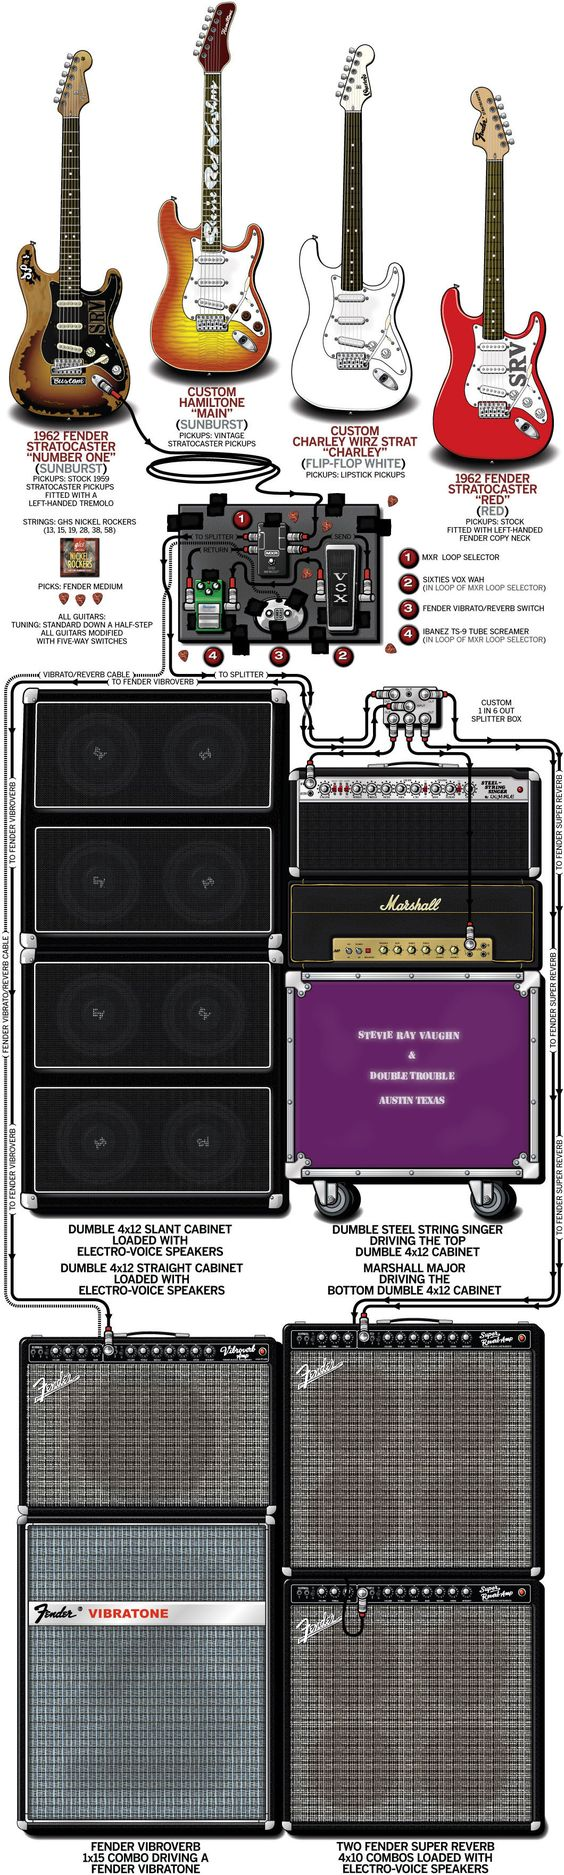 SRV's Rig...the rig I've been trying to replicate on a small scale for years.